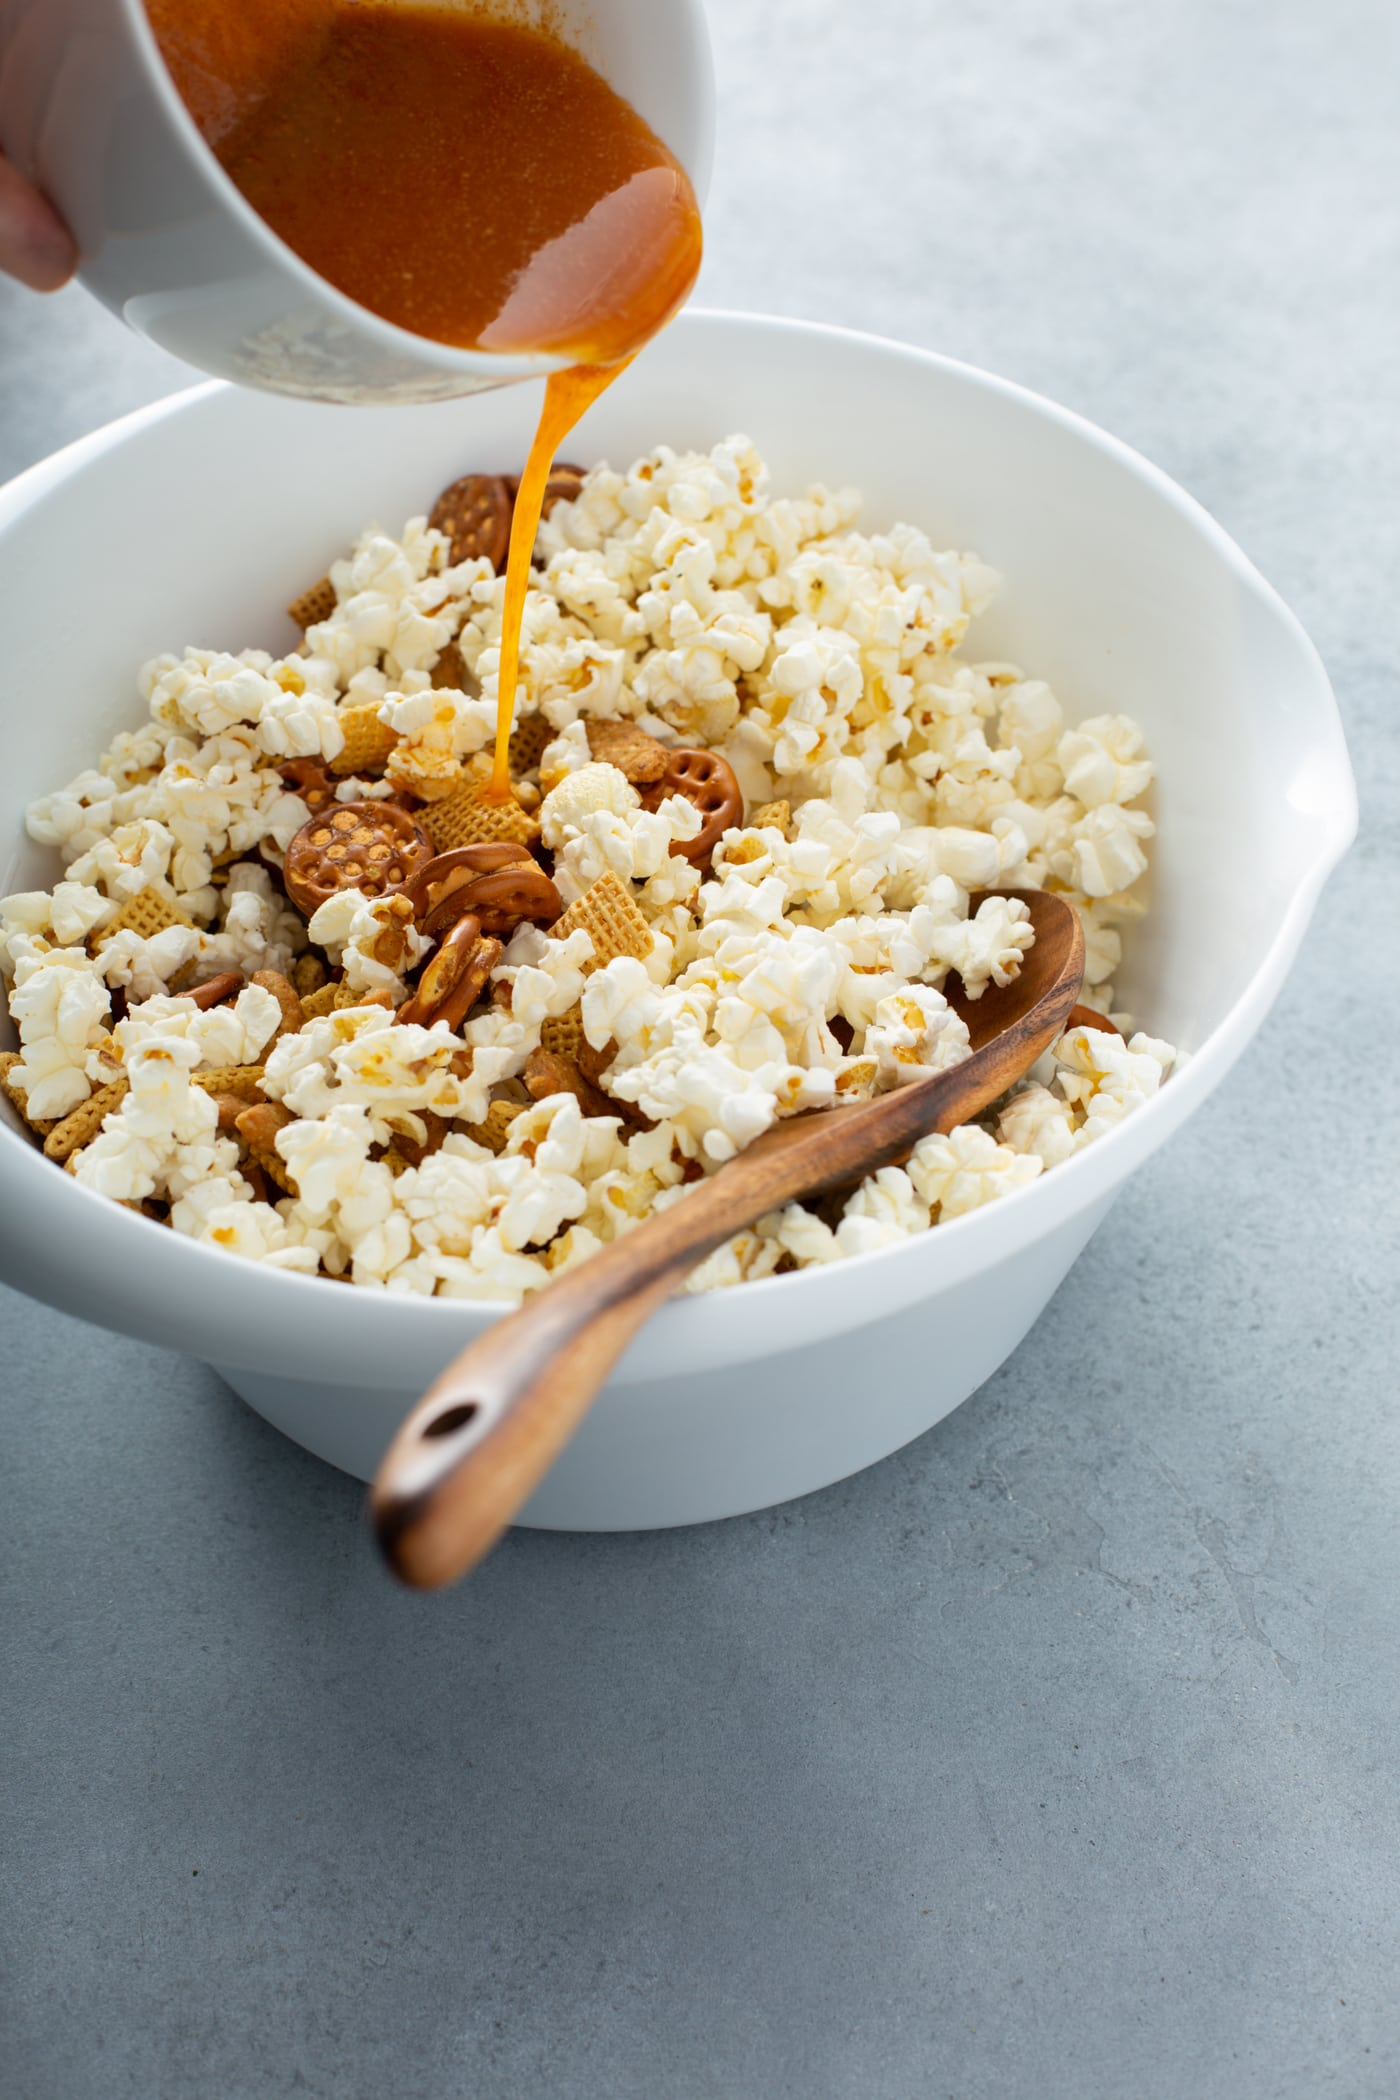 A bowl of popcorn other ingredients for 5 minute savory snack mix. Melted butter and spices are being poured over the popcorn.